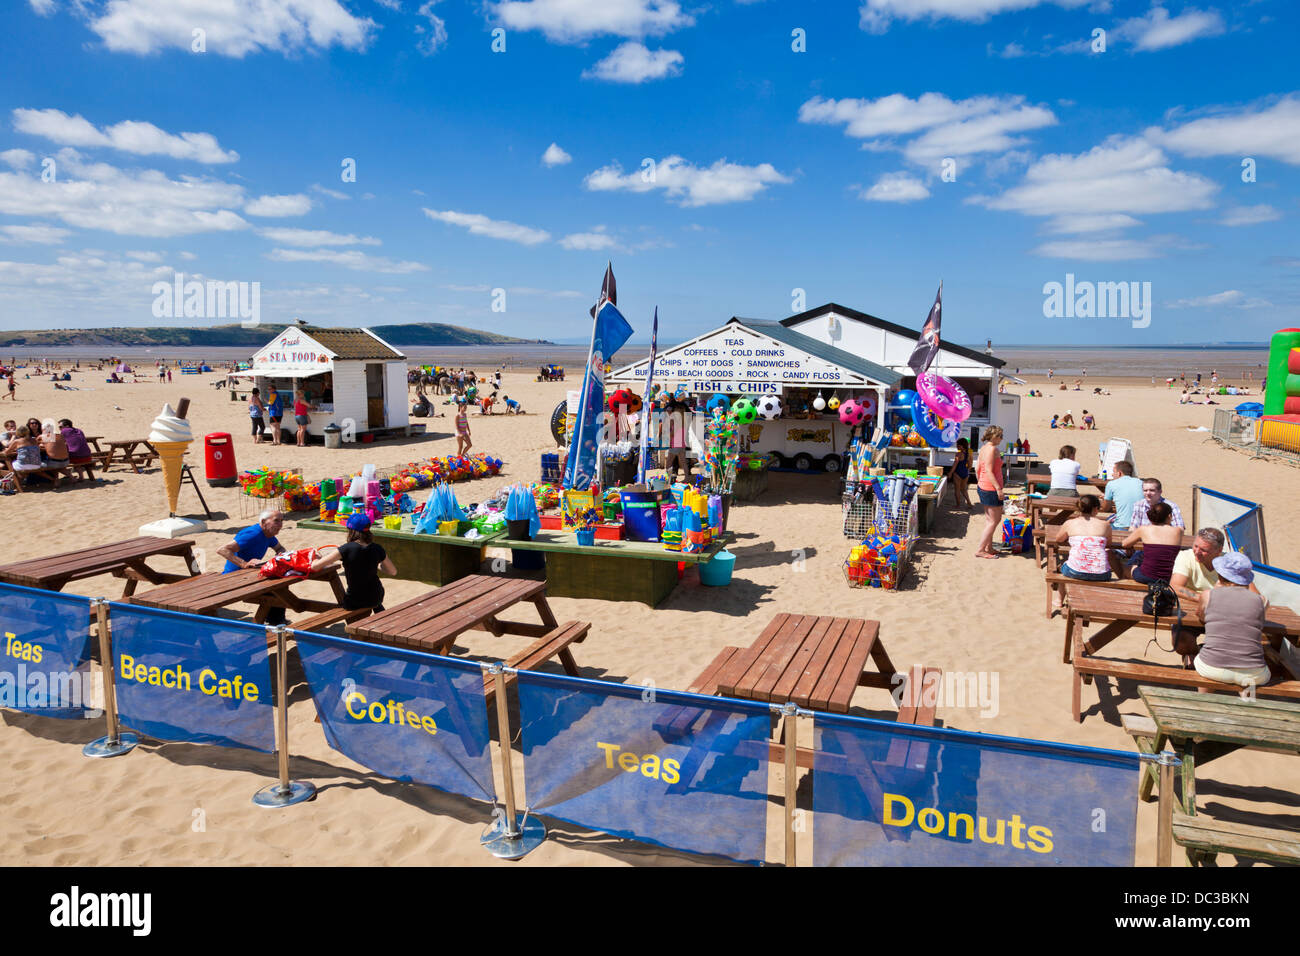 Weston Super Mare Beach Cafe Weston-Super-Mare Somerset England UK GB EU Europe - Stock Image